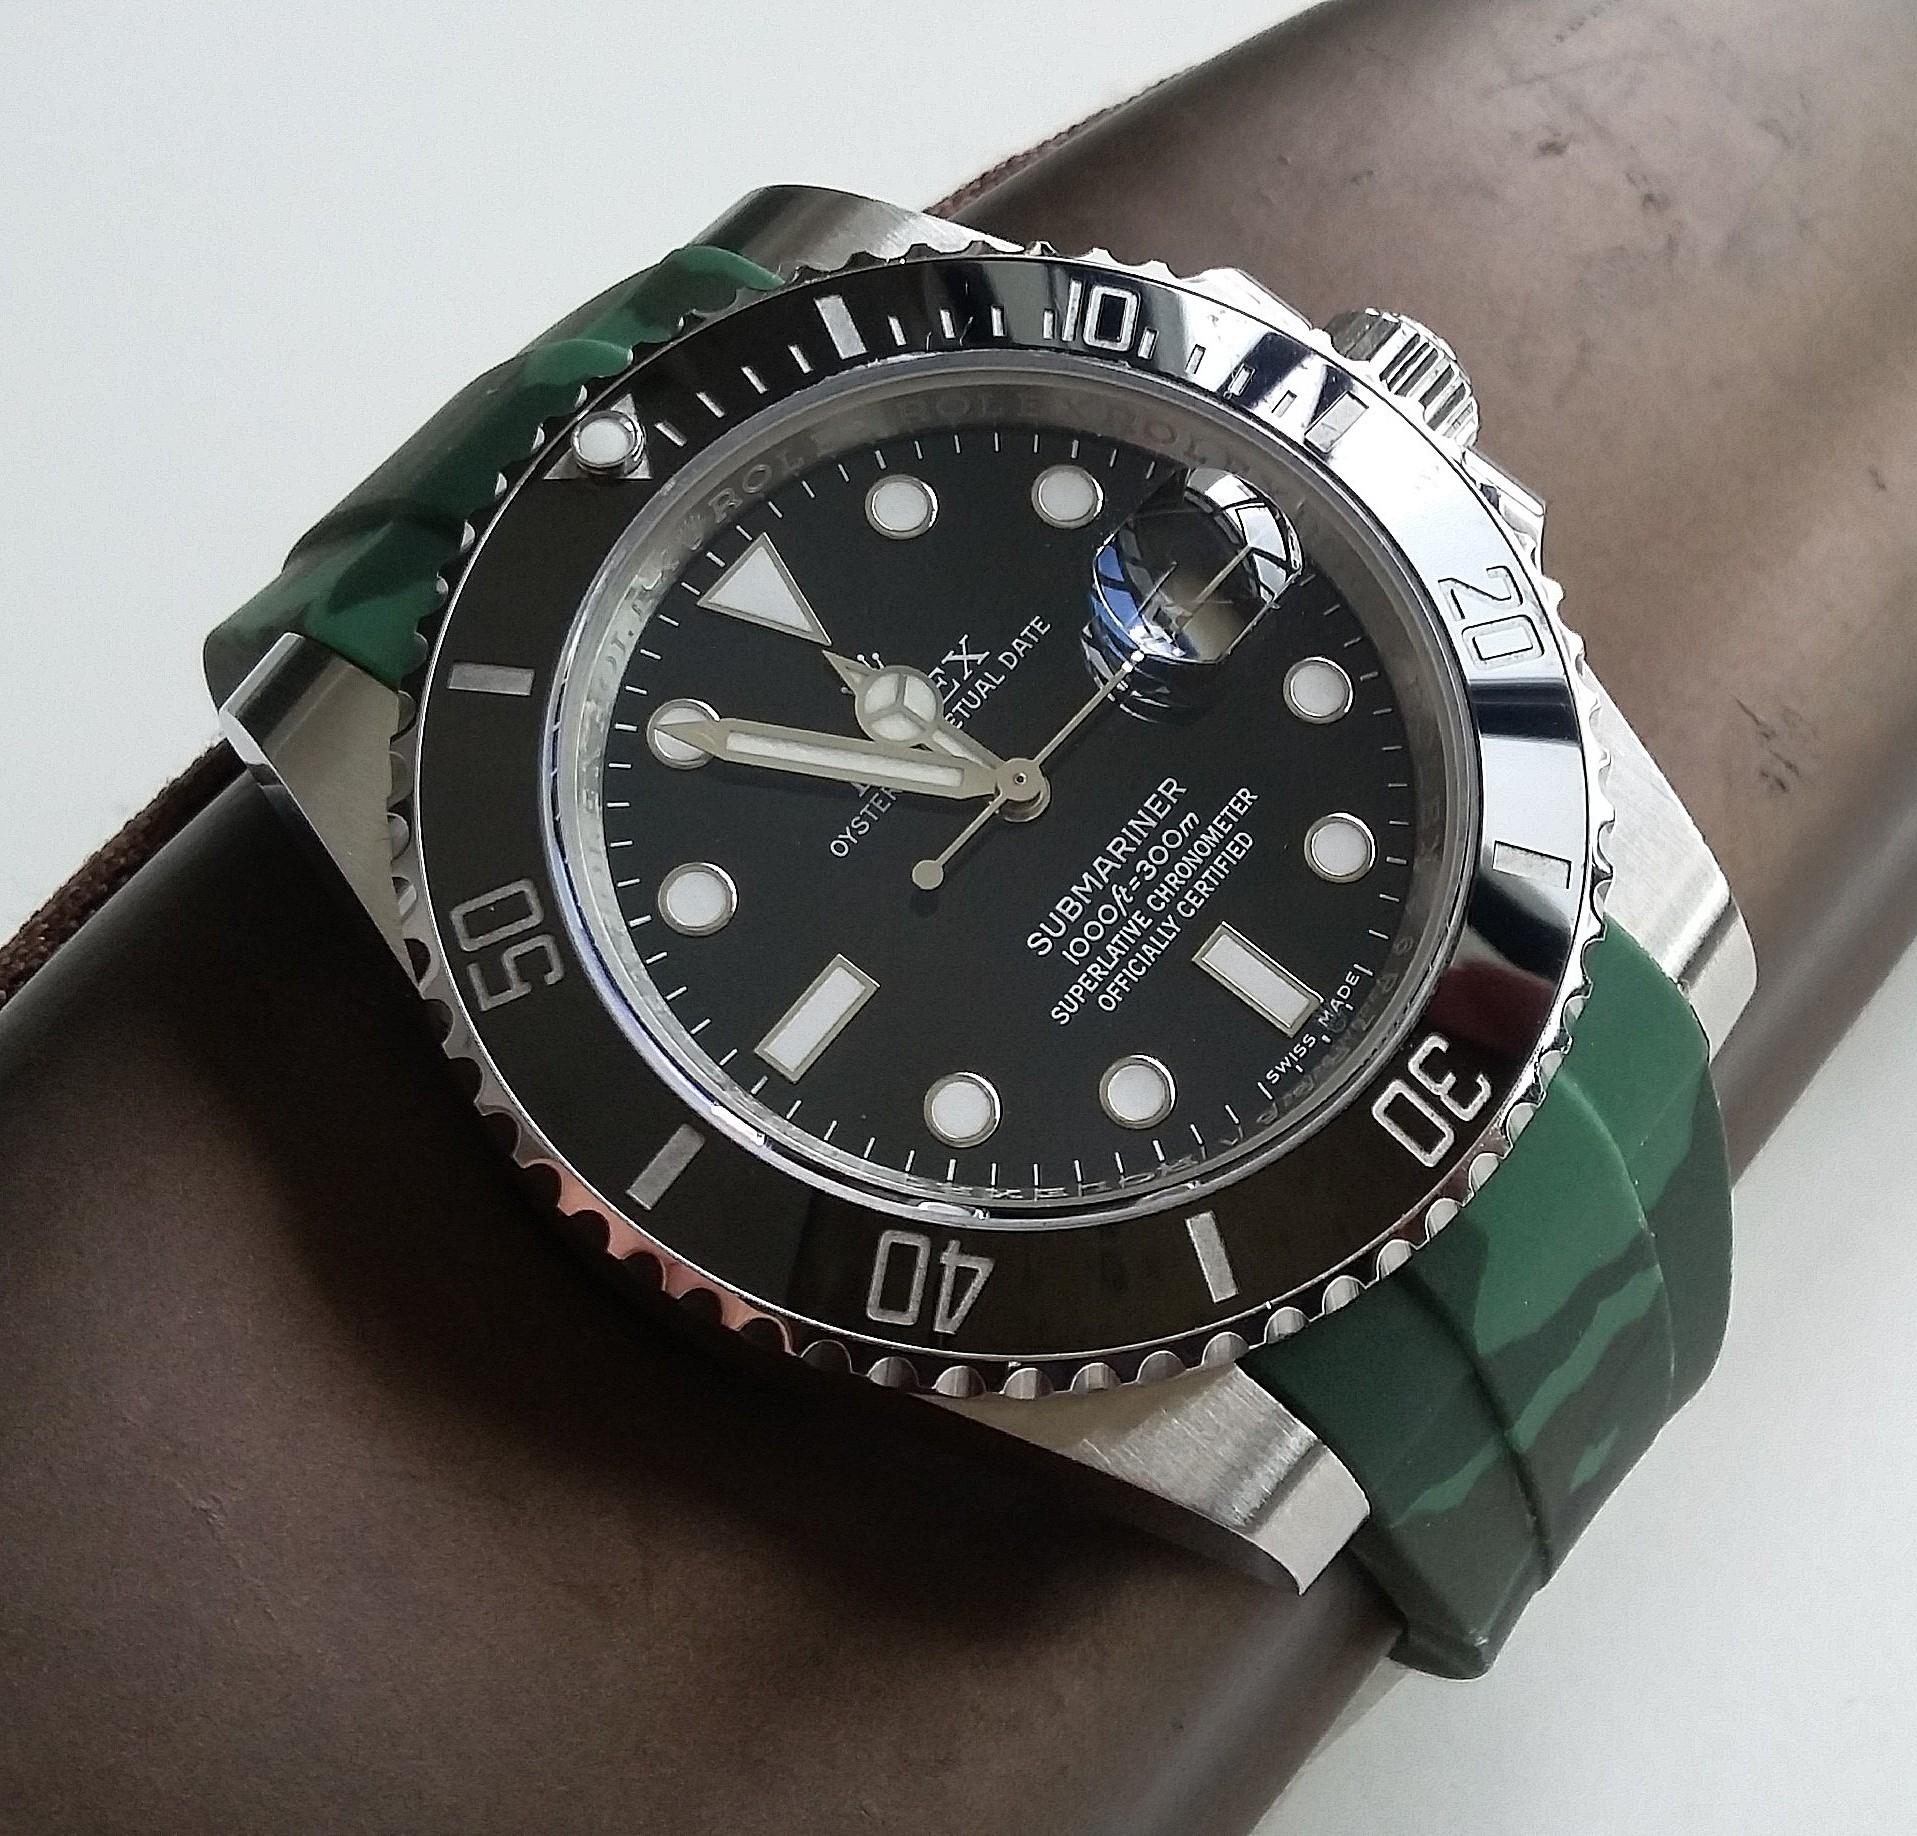 20mm JUNGLE GREEN CAMOUFLAGE RUBBER STRAP WITH STEEL CLASP FOR ROLEX (PRICE INCLUDES FITMENT)